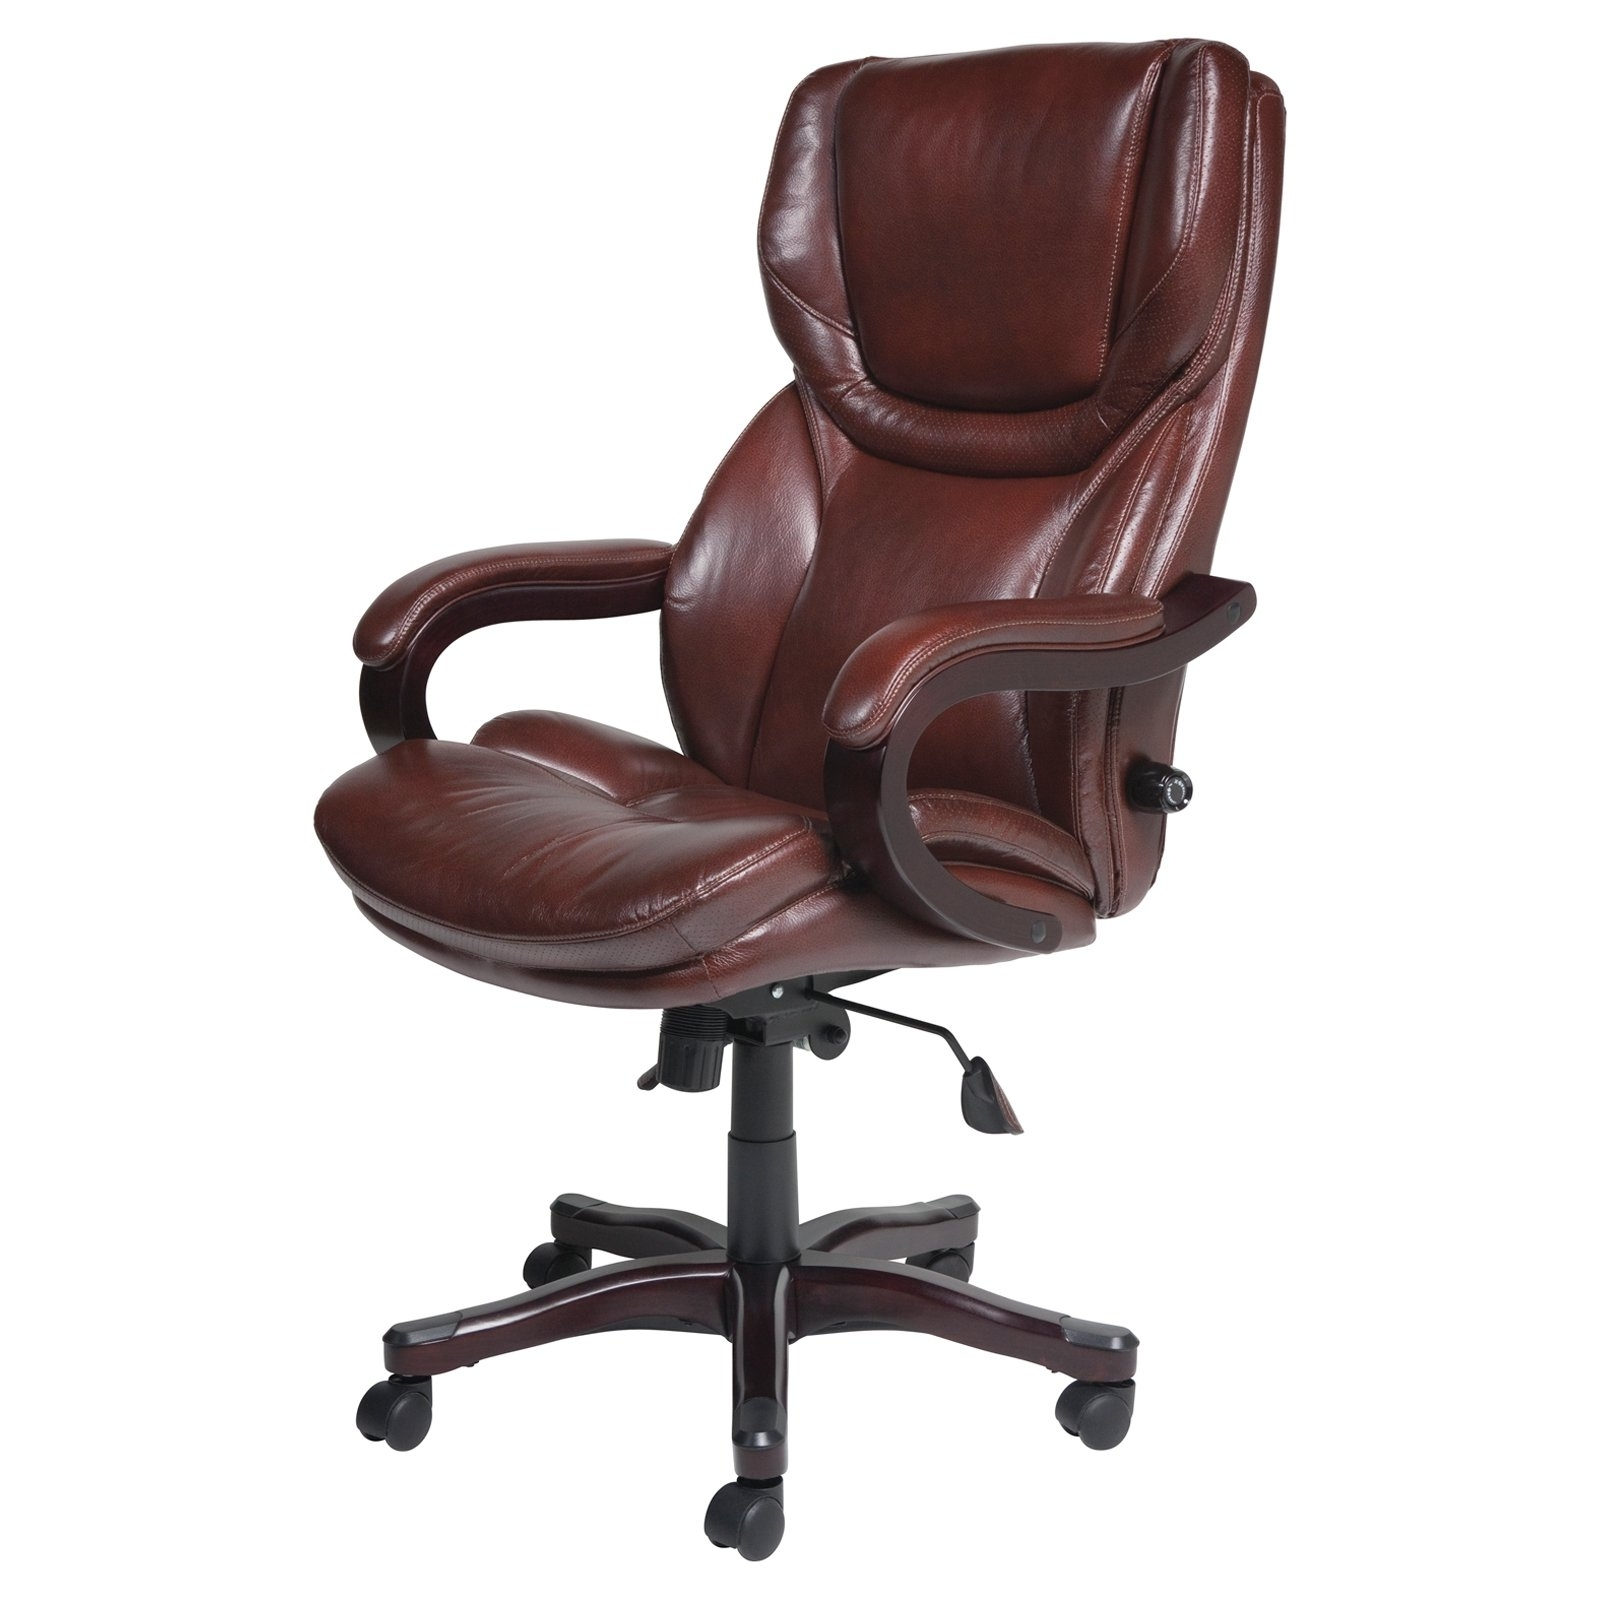 2019 Chair : Ergonomic Black Leather Executive Office Chair Verona For Wood And Leather Executive Office Chairs (View 10 of 20)